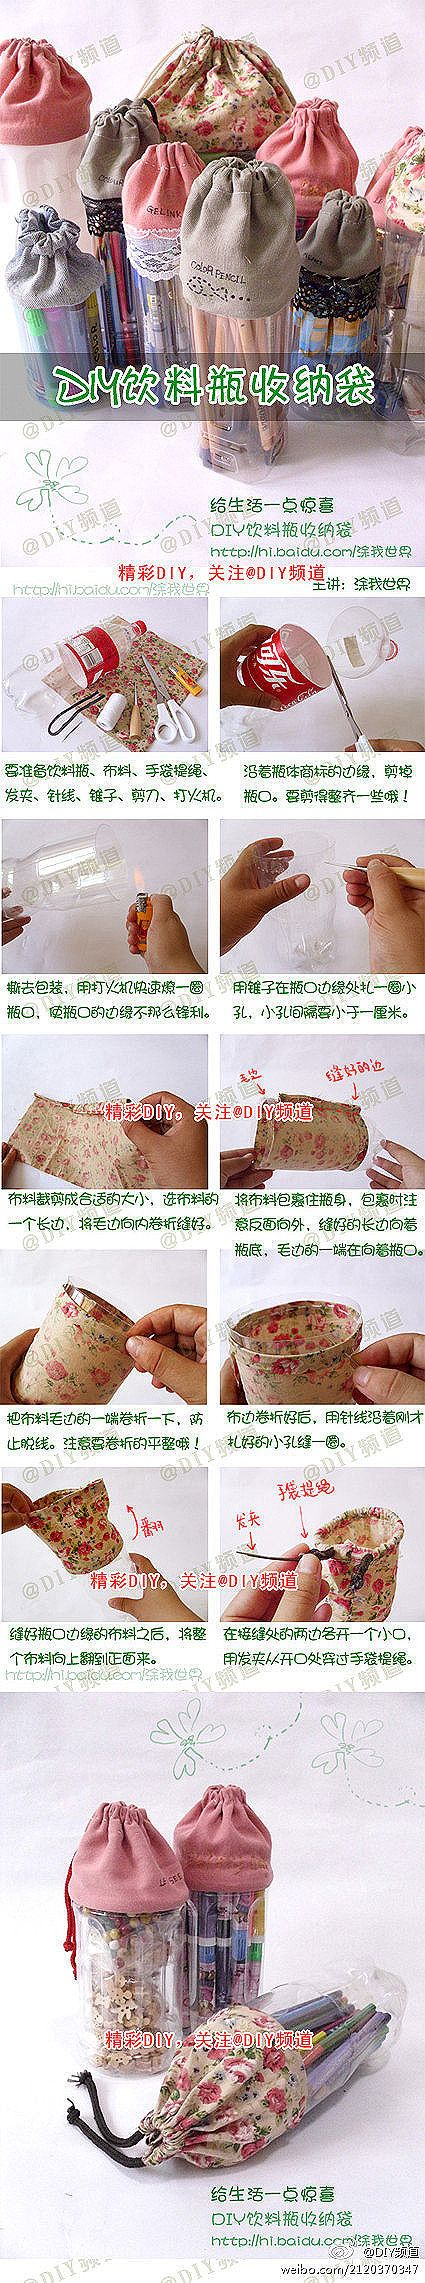 DIY Handmade BAGS FROM SODA AND WATER BOTTLES. WOW!